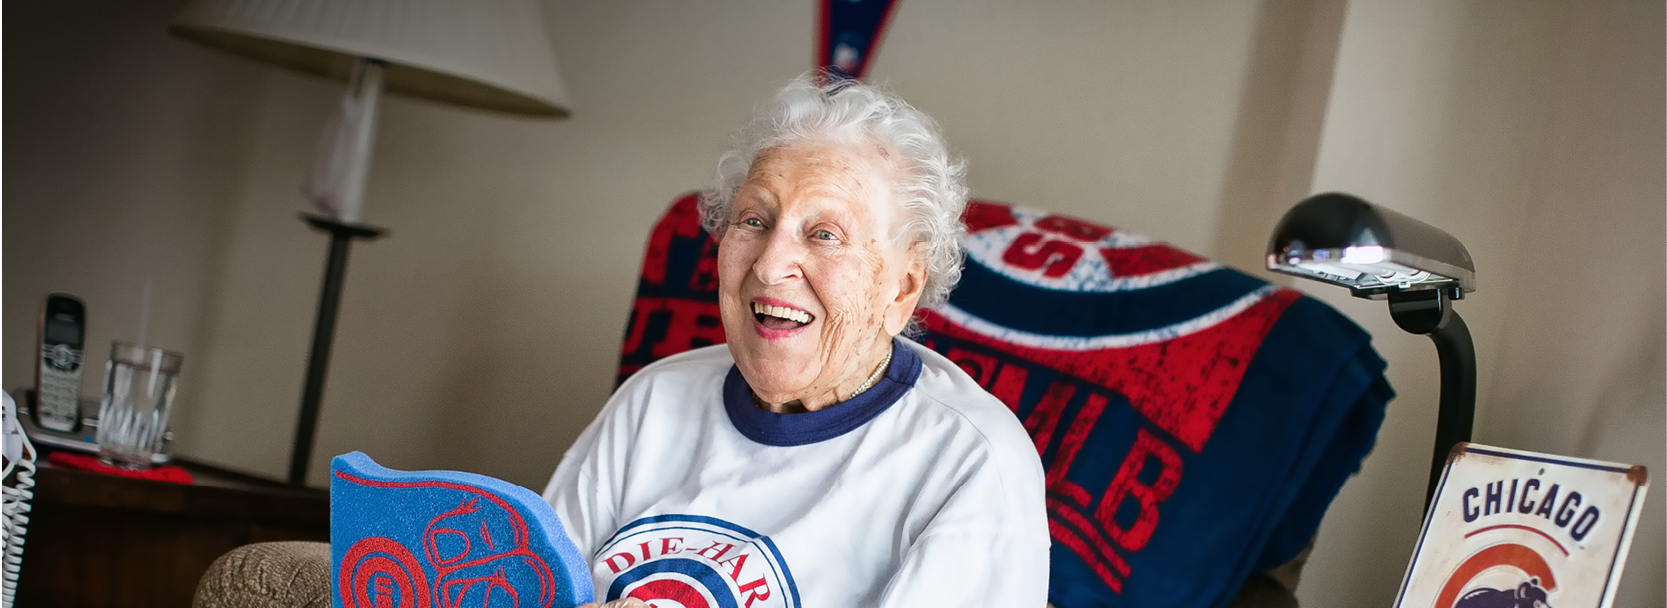 Meet Cubs superfan: Rose Salerno